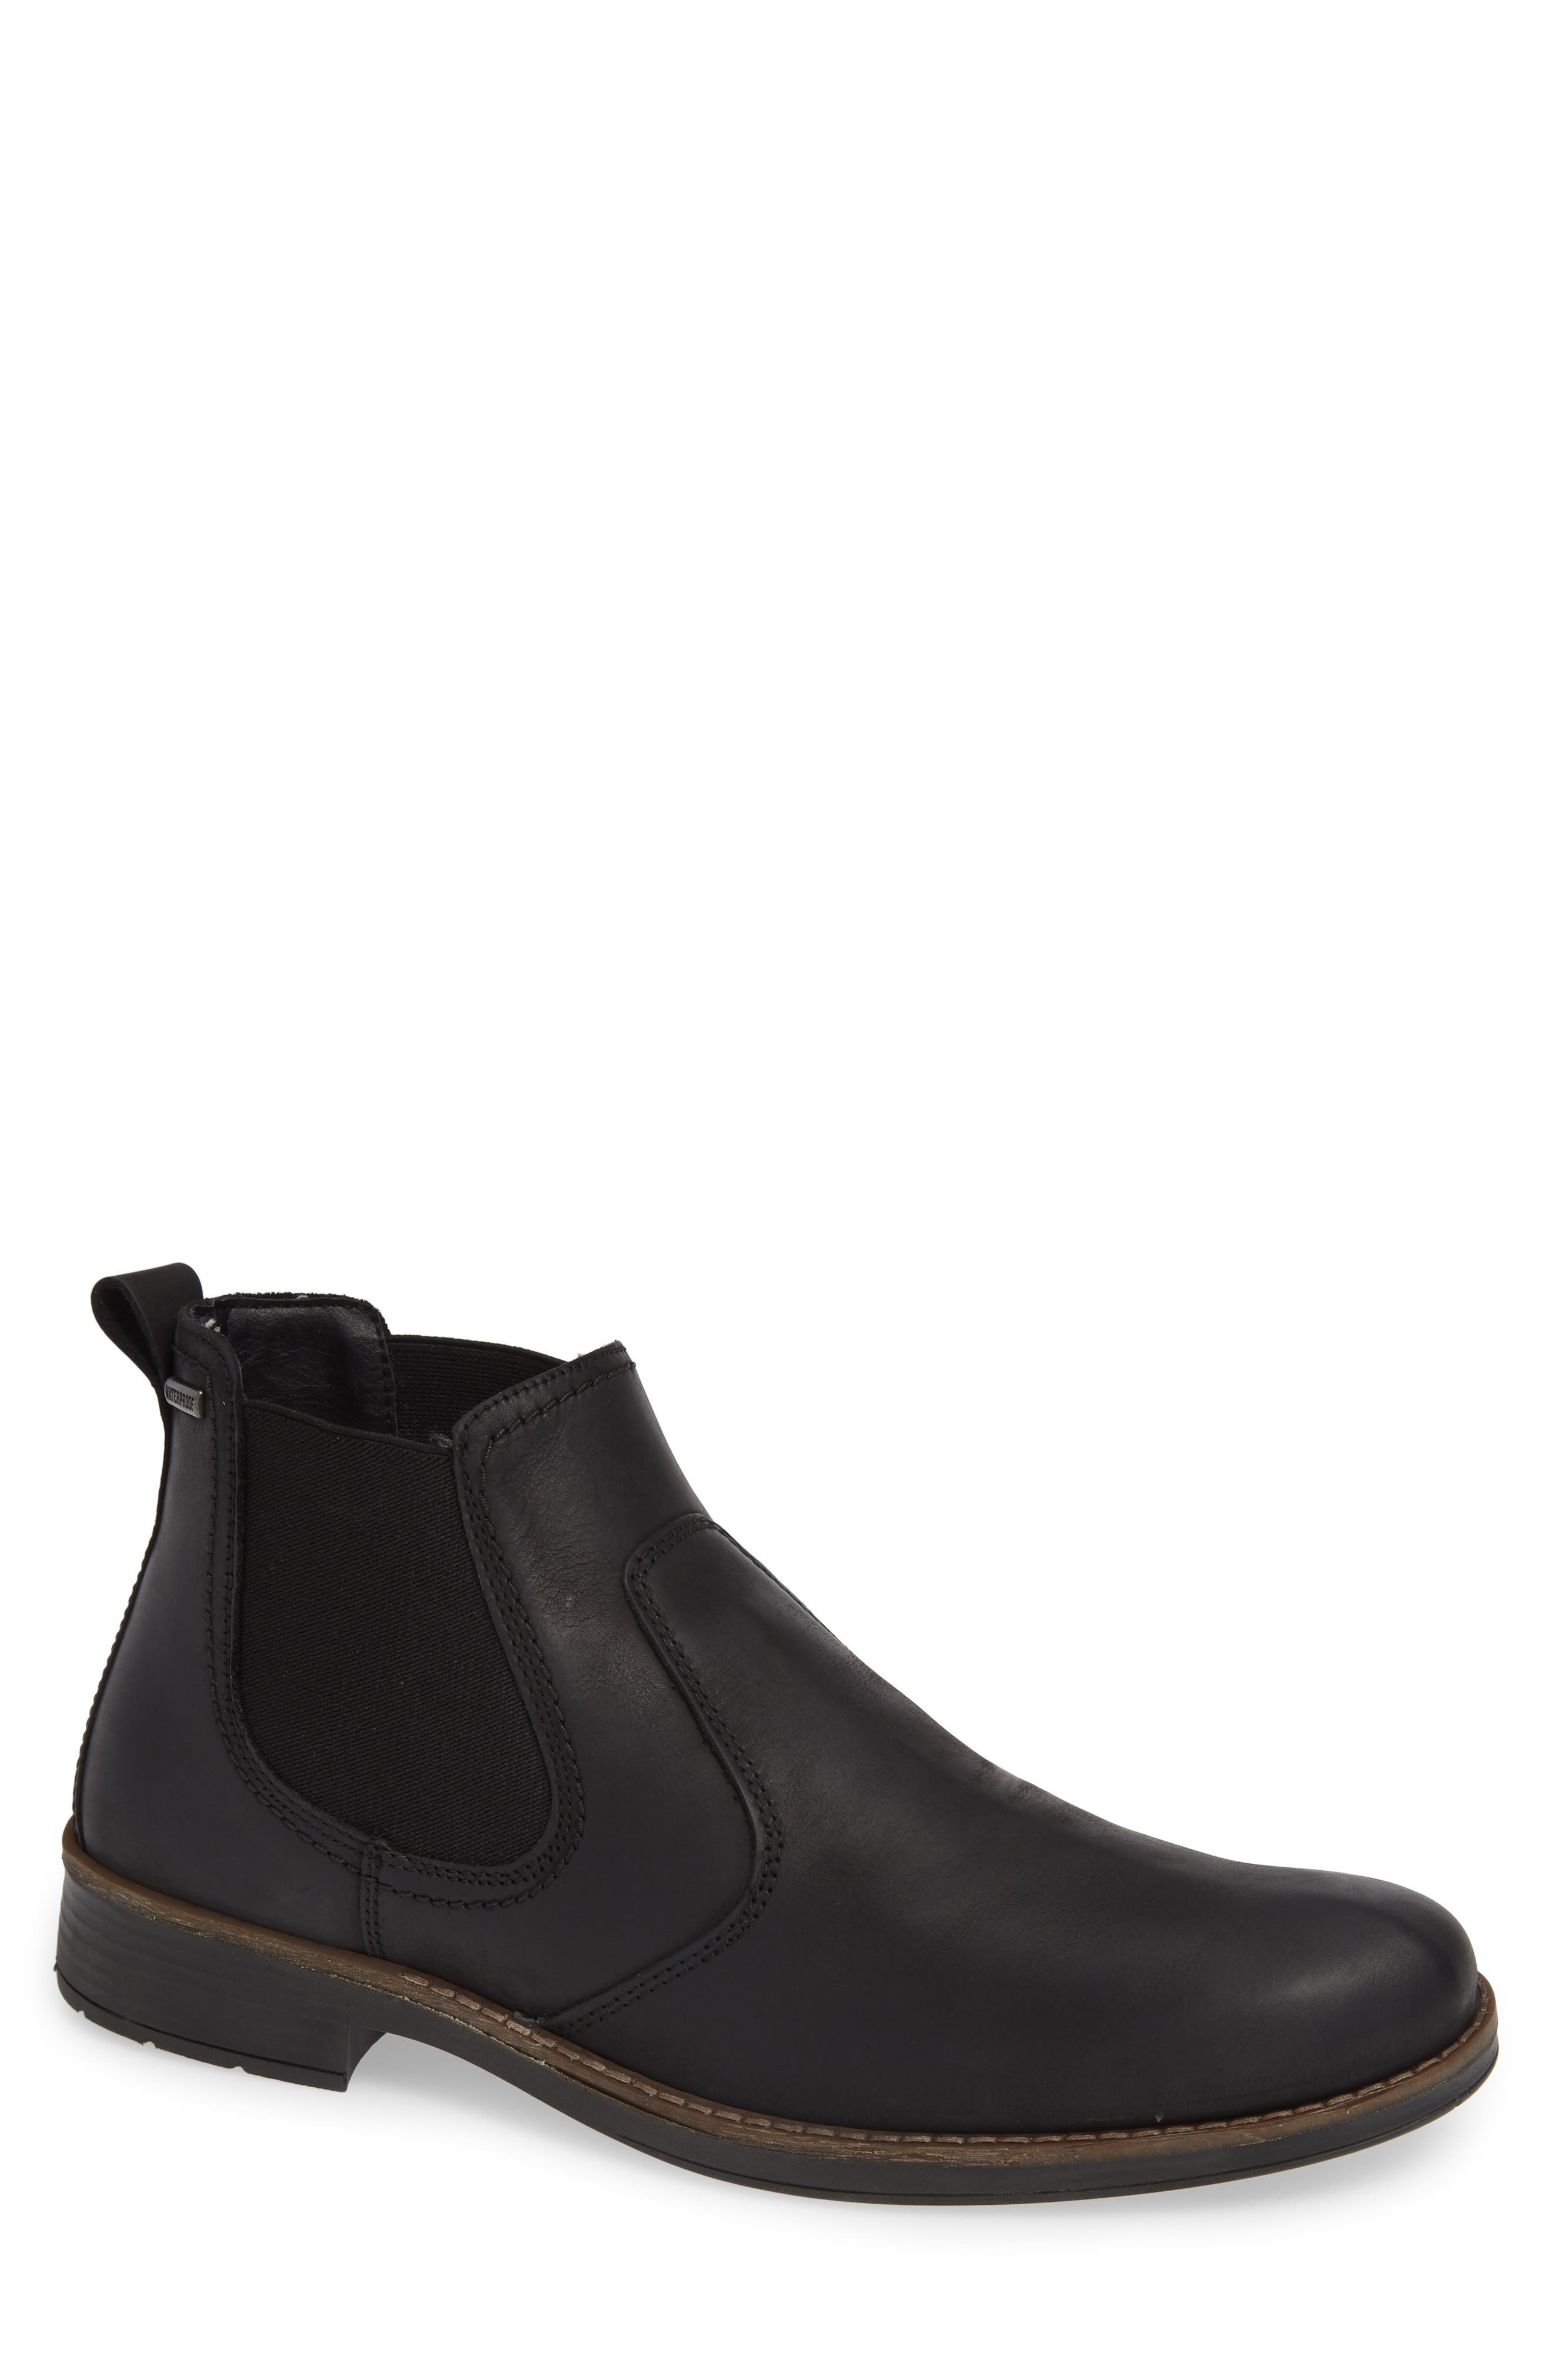 Maple Waterproof Chelsea Boot,                         Main,                         color, BLACK LEATHER